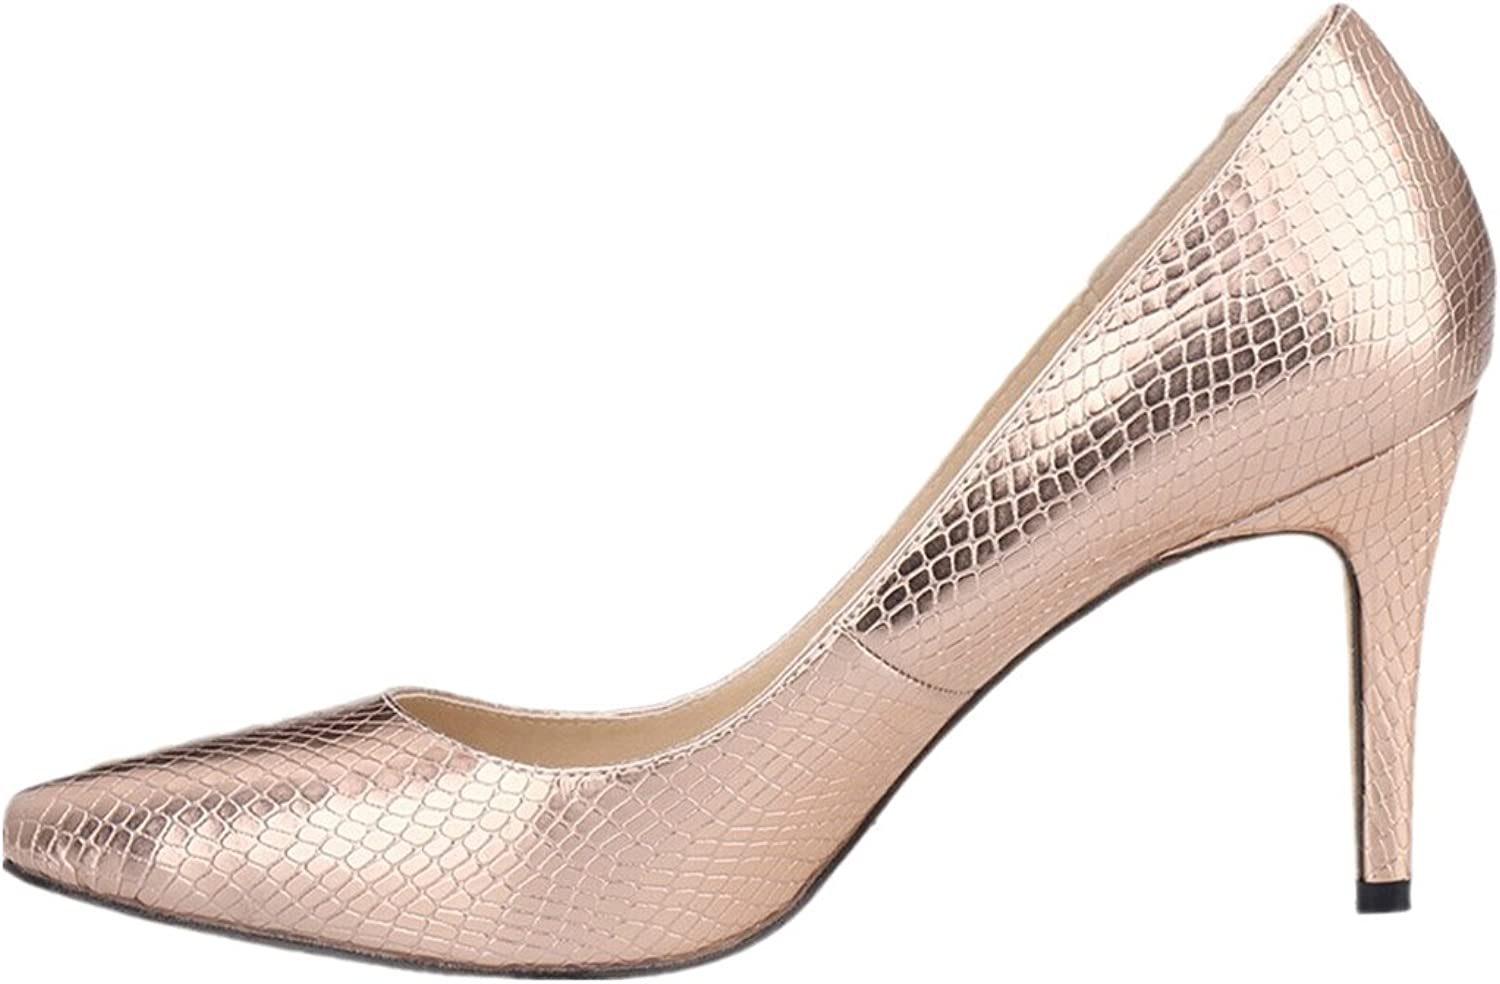 SAMSAY Women's Sexy Mid High Heels Pointed Toe Wedding Dress Pumps shoes